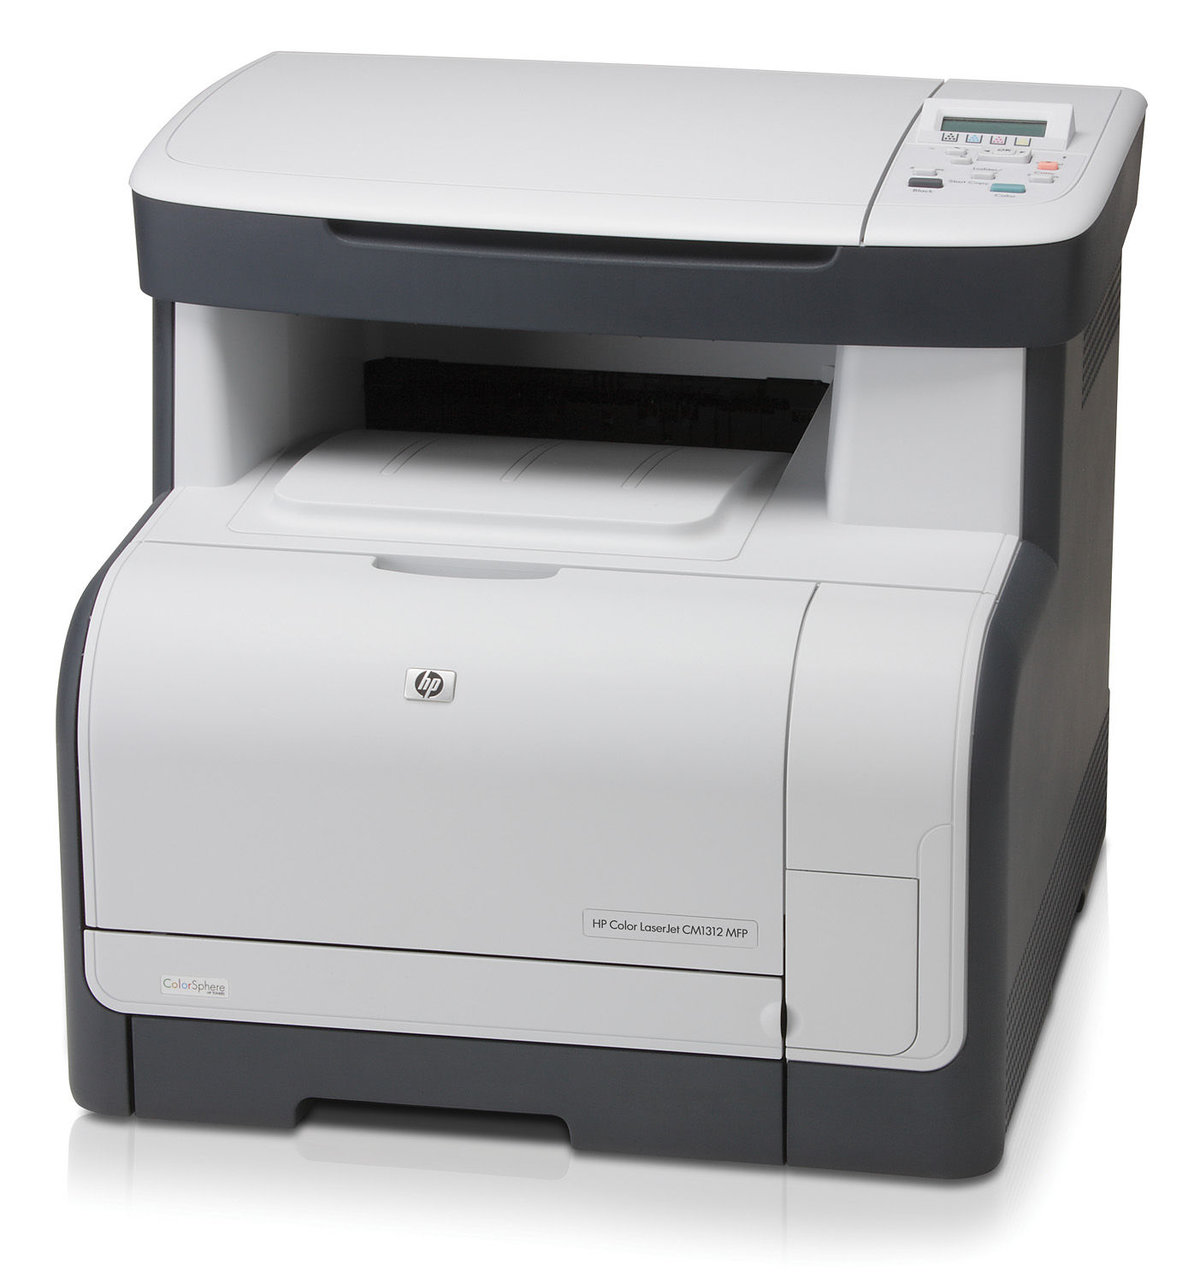 CC430A#ABU - HP Color LaserJet CM1312 MFP - multifunction printer ( colour  ) - Currys PC World Business